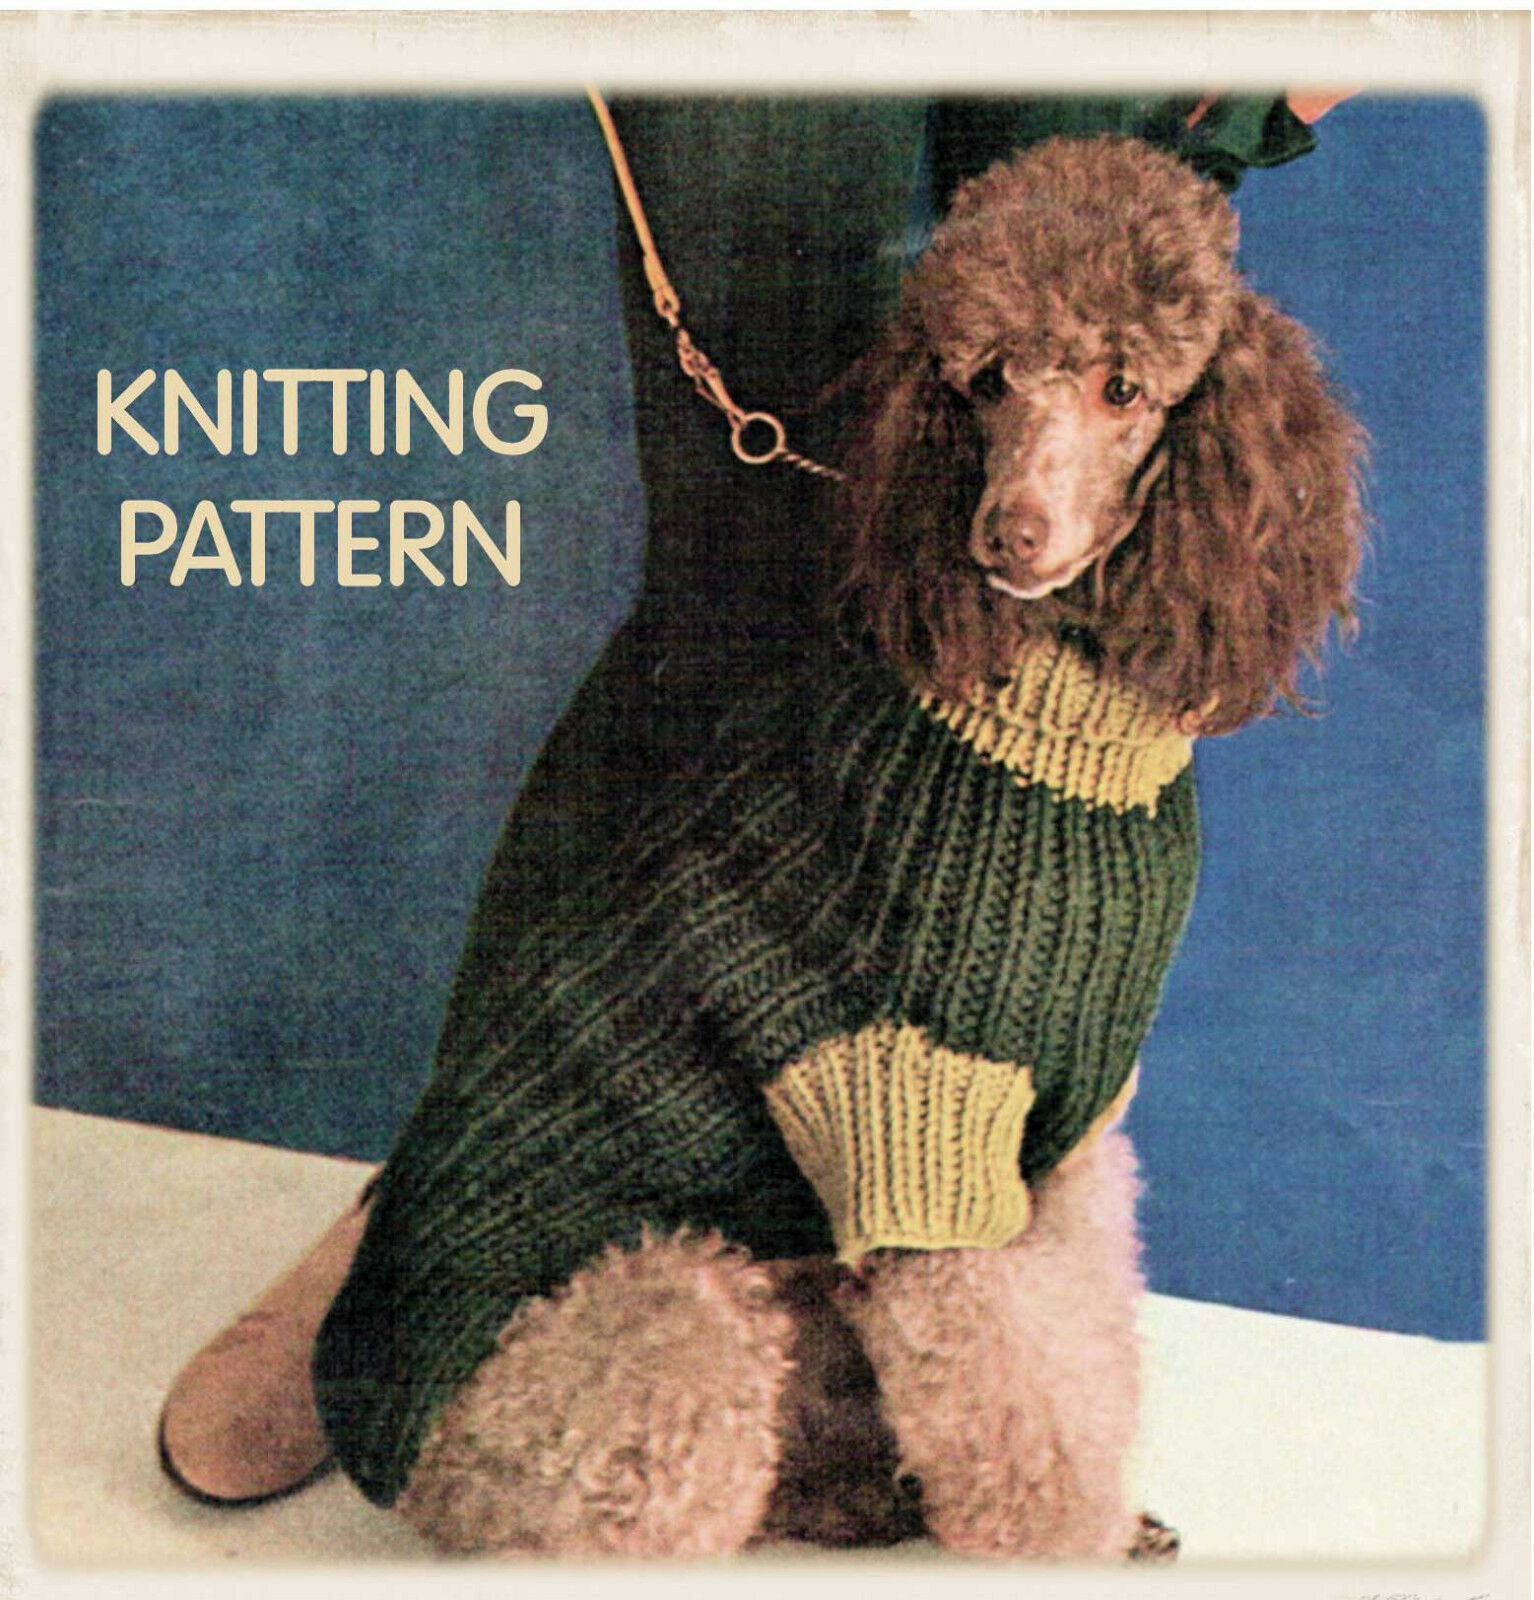 Vintage Knitting Pattern Copy -To Knit Dogs Coats In 3 Sizes -Super Chunky Ya...